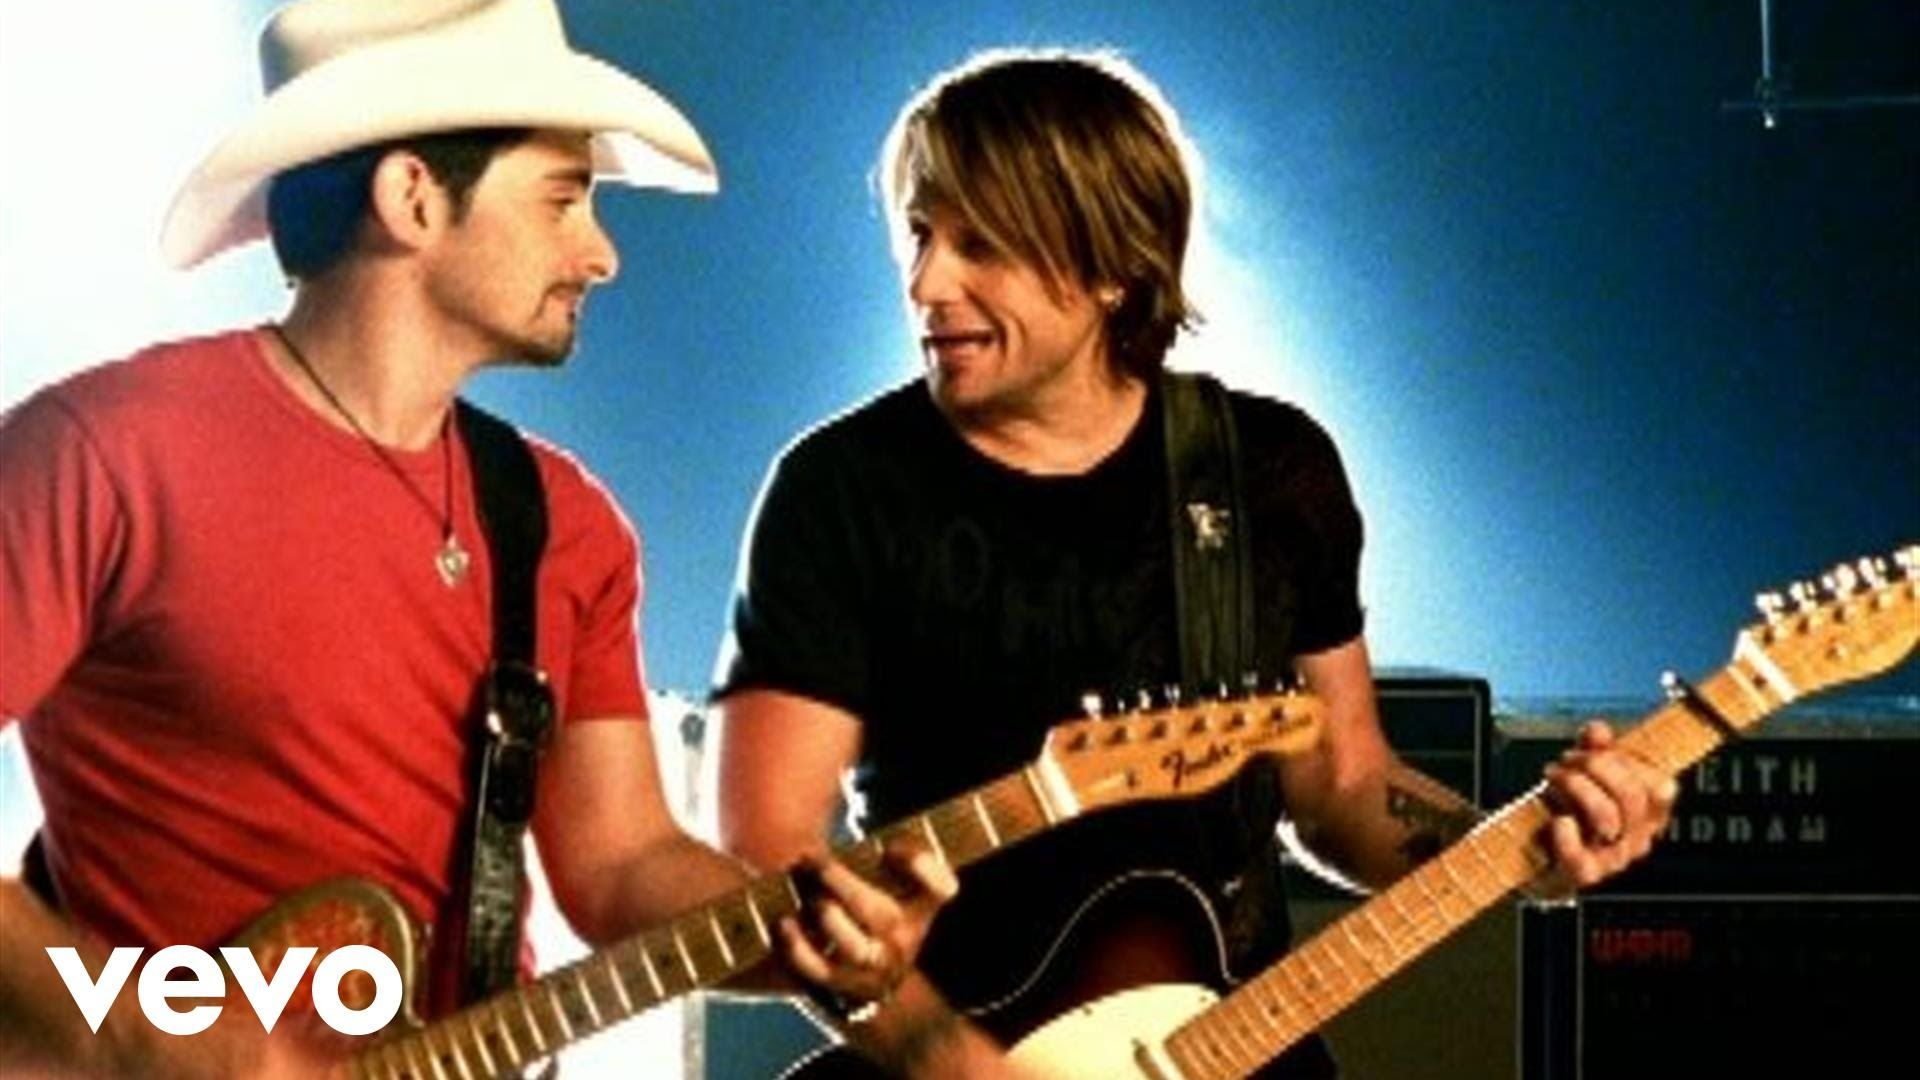 Brad Paisley Start A Band Duet With Keith Urban Brad Paisley Songs Brad Paisley Keith Urban